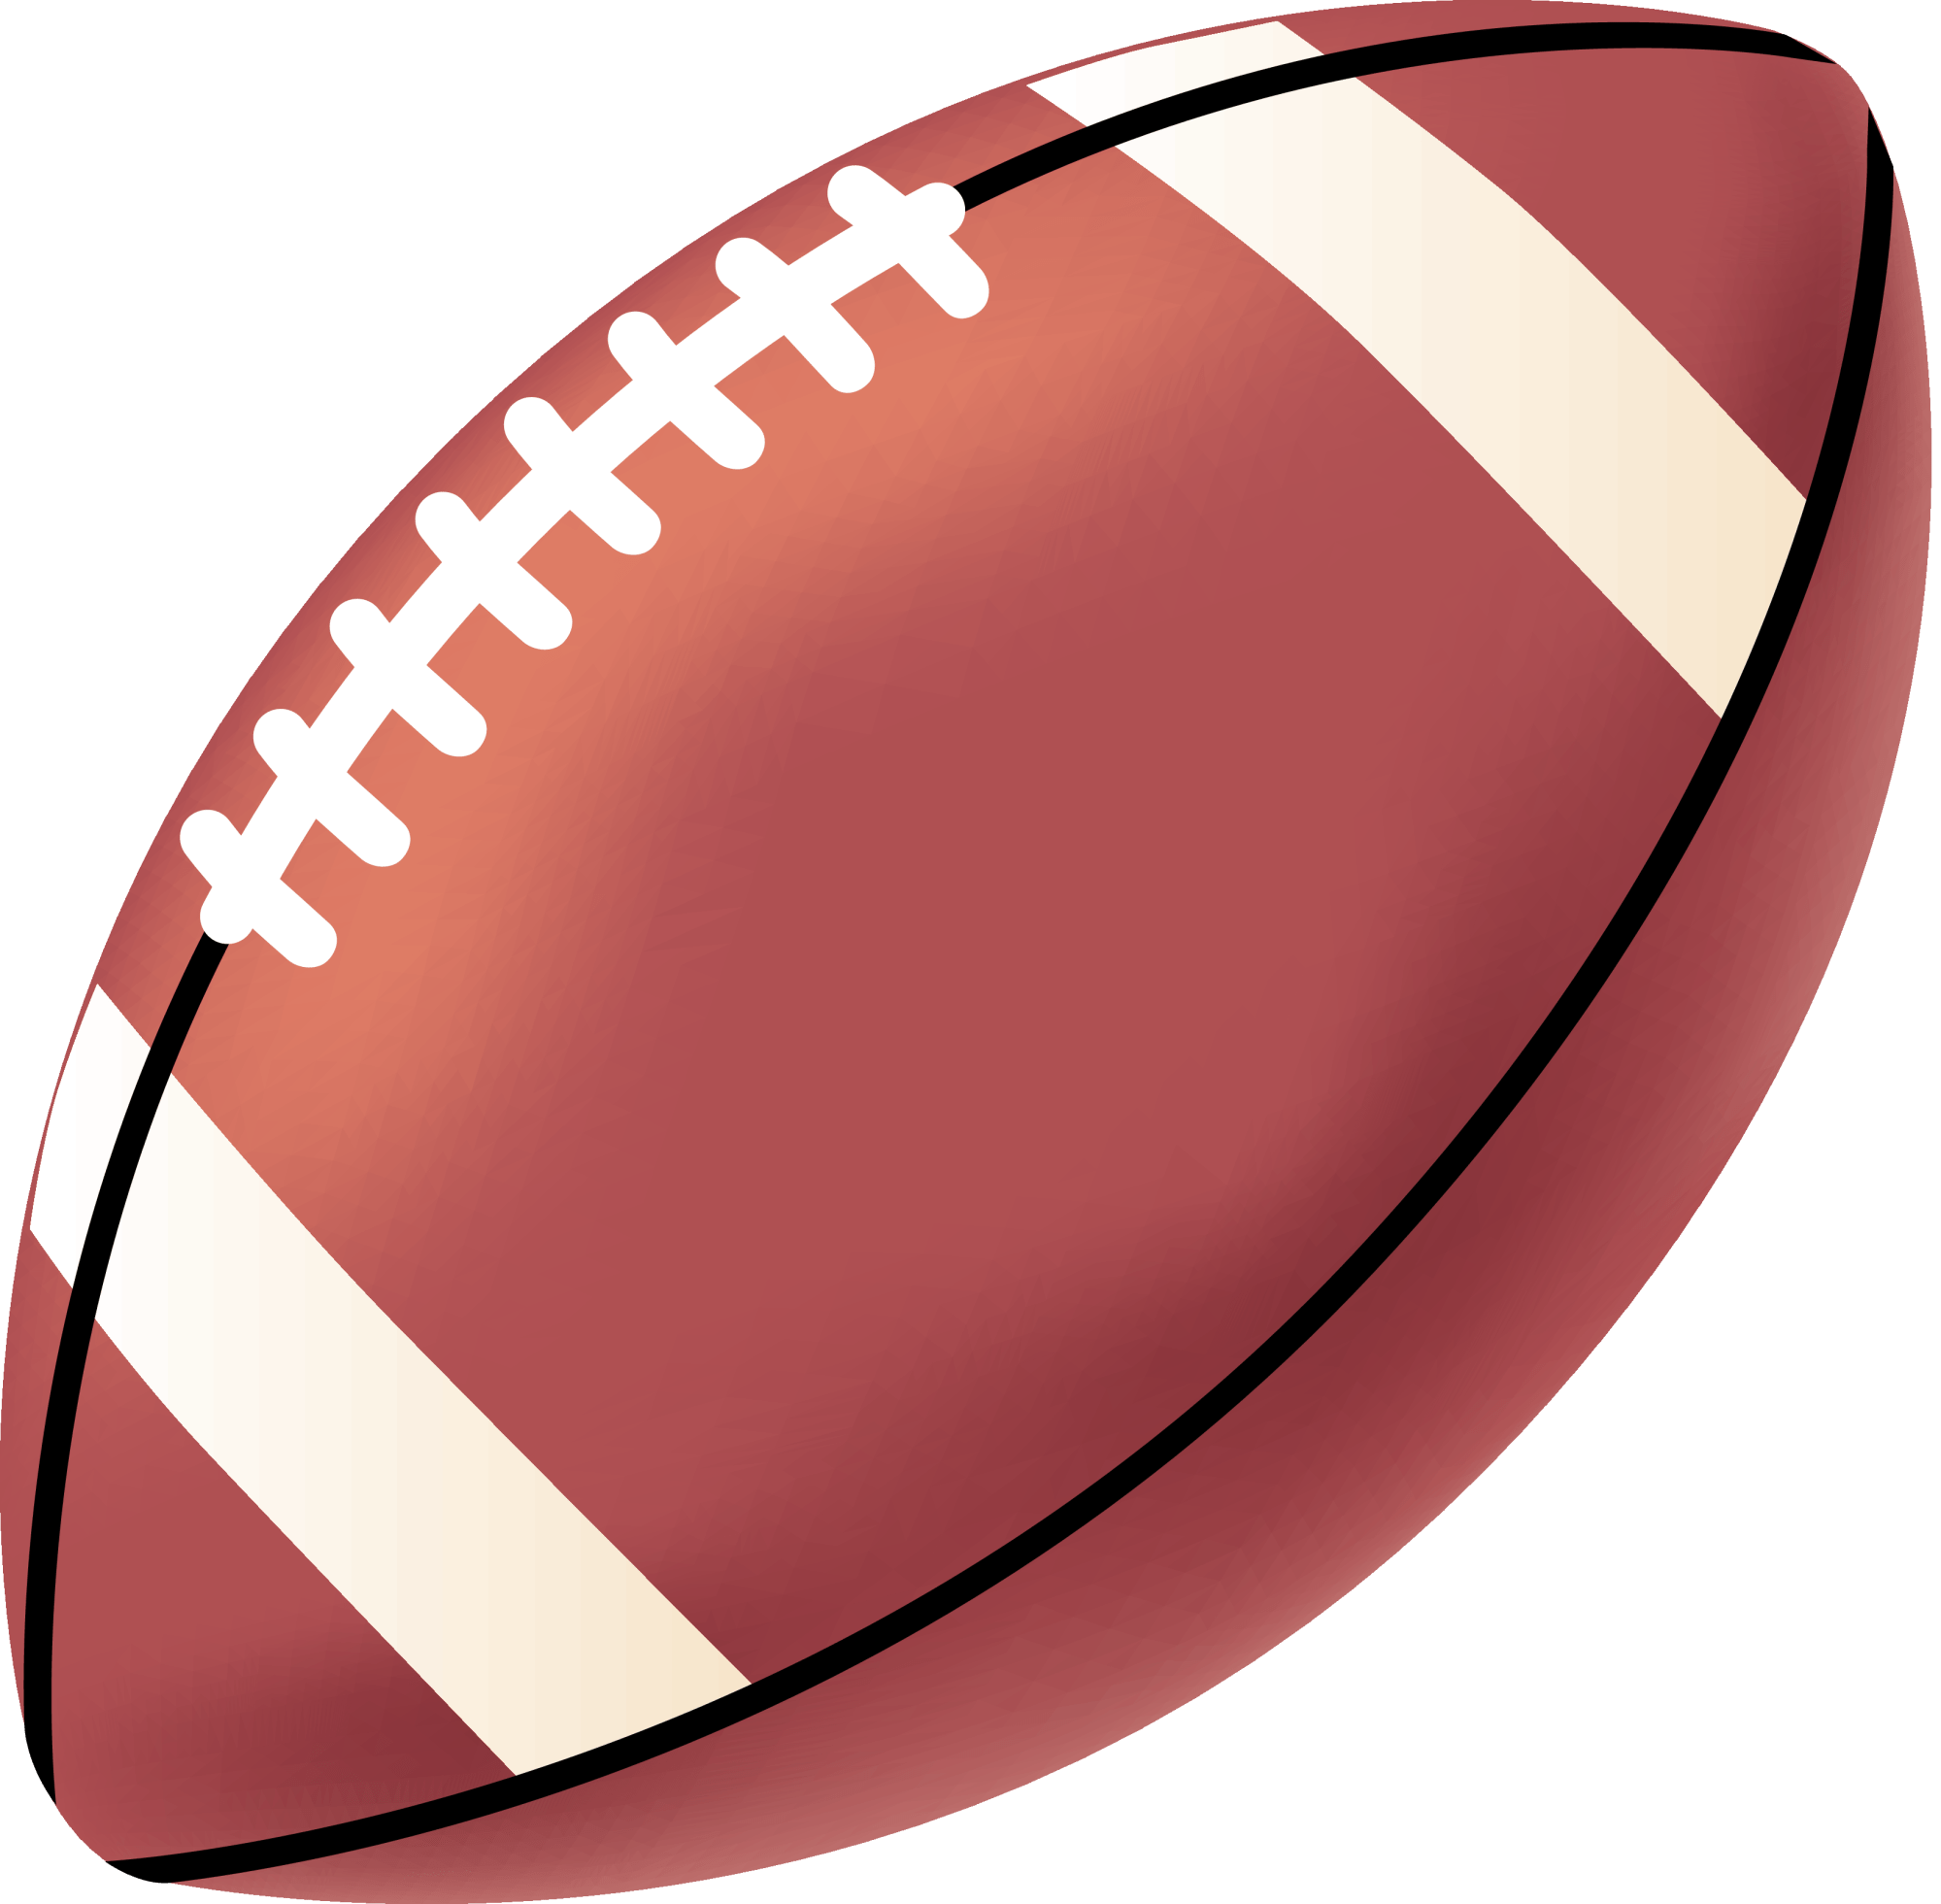 hight resolution of sports clipart football clipart gallery free clipart image